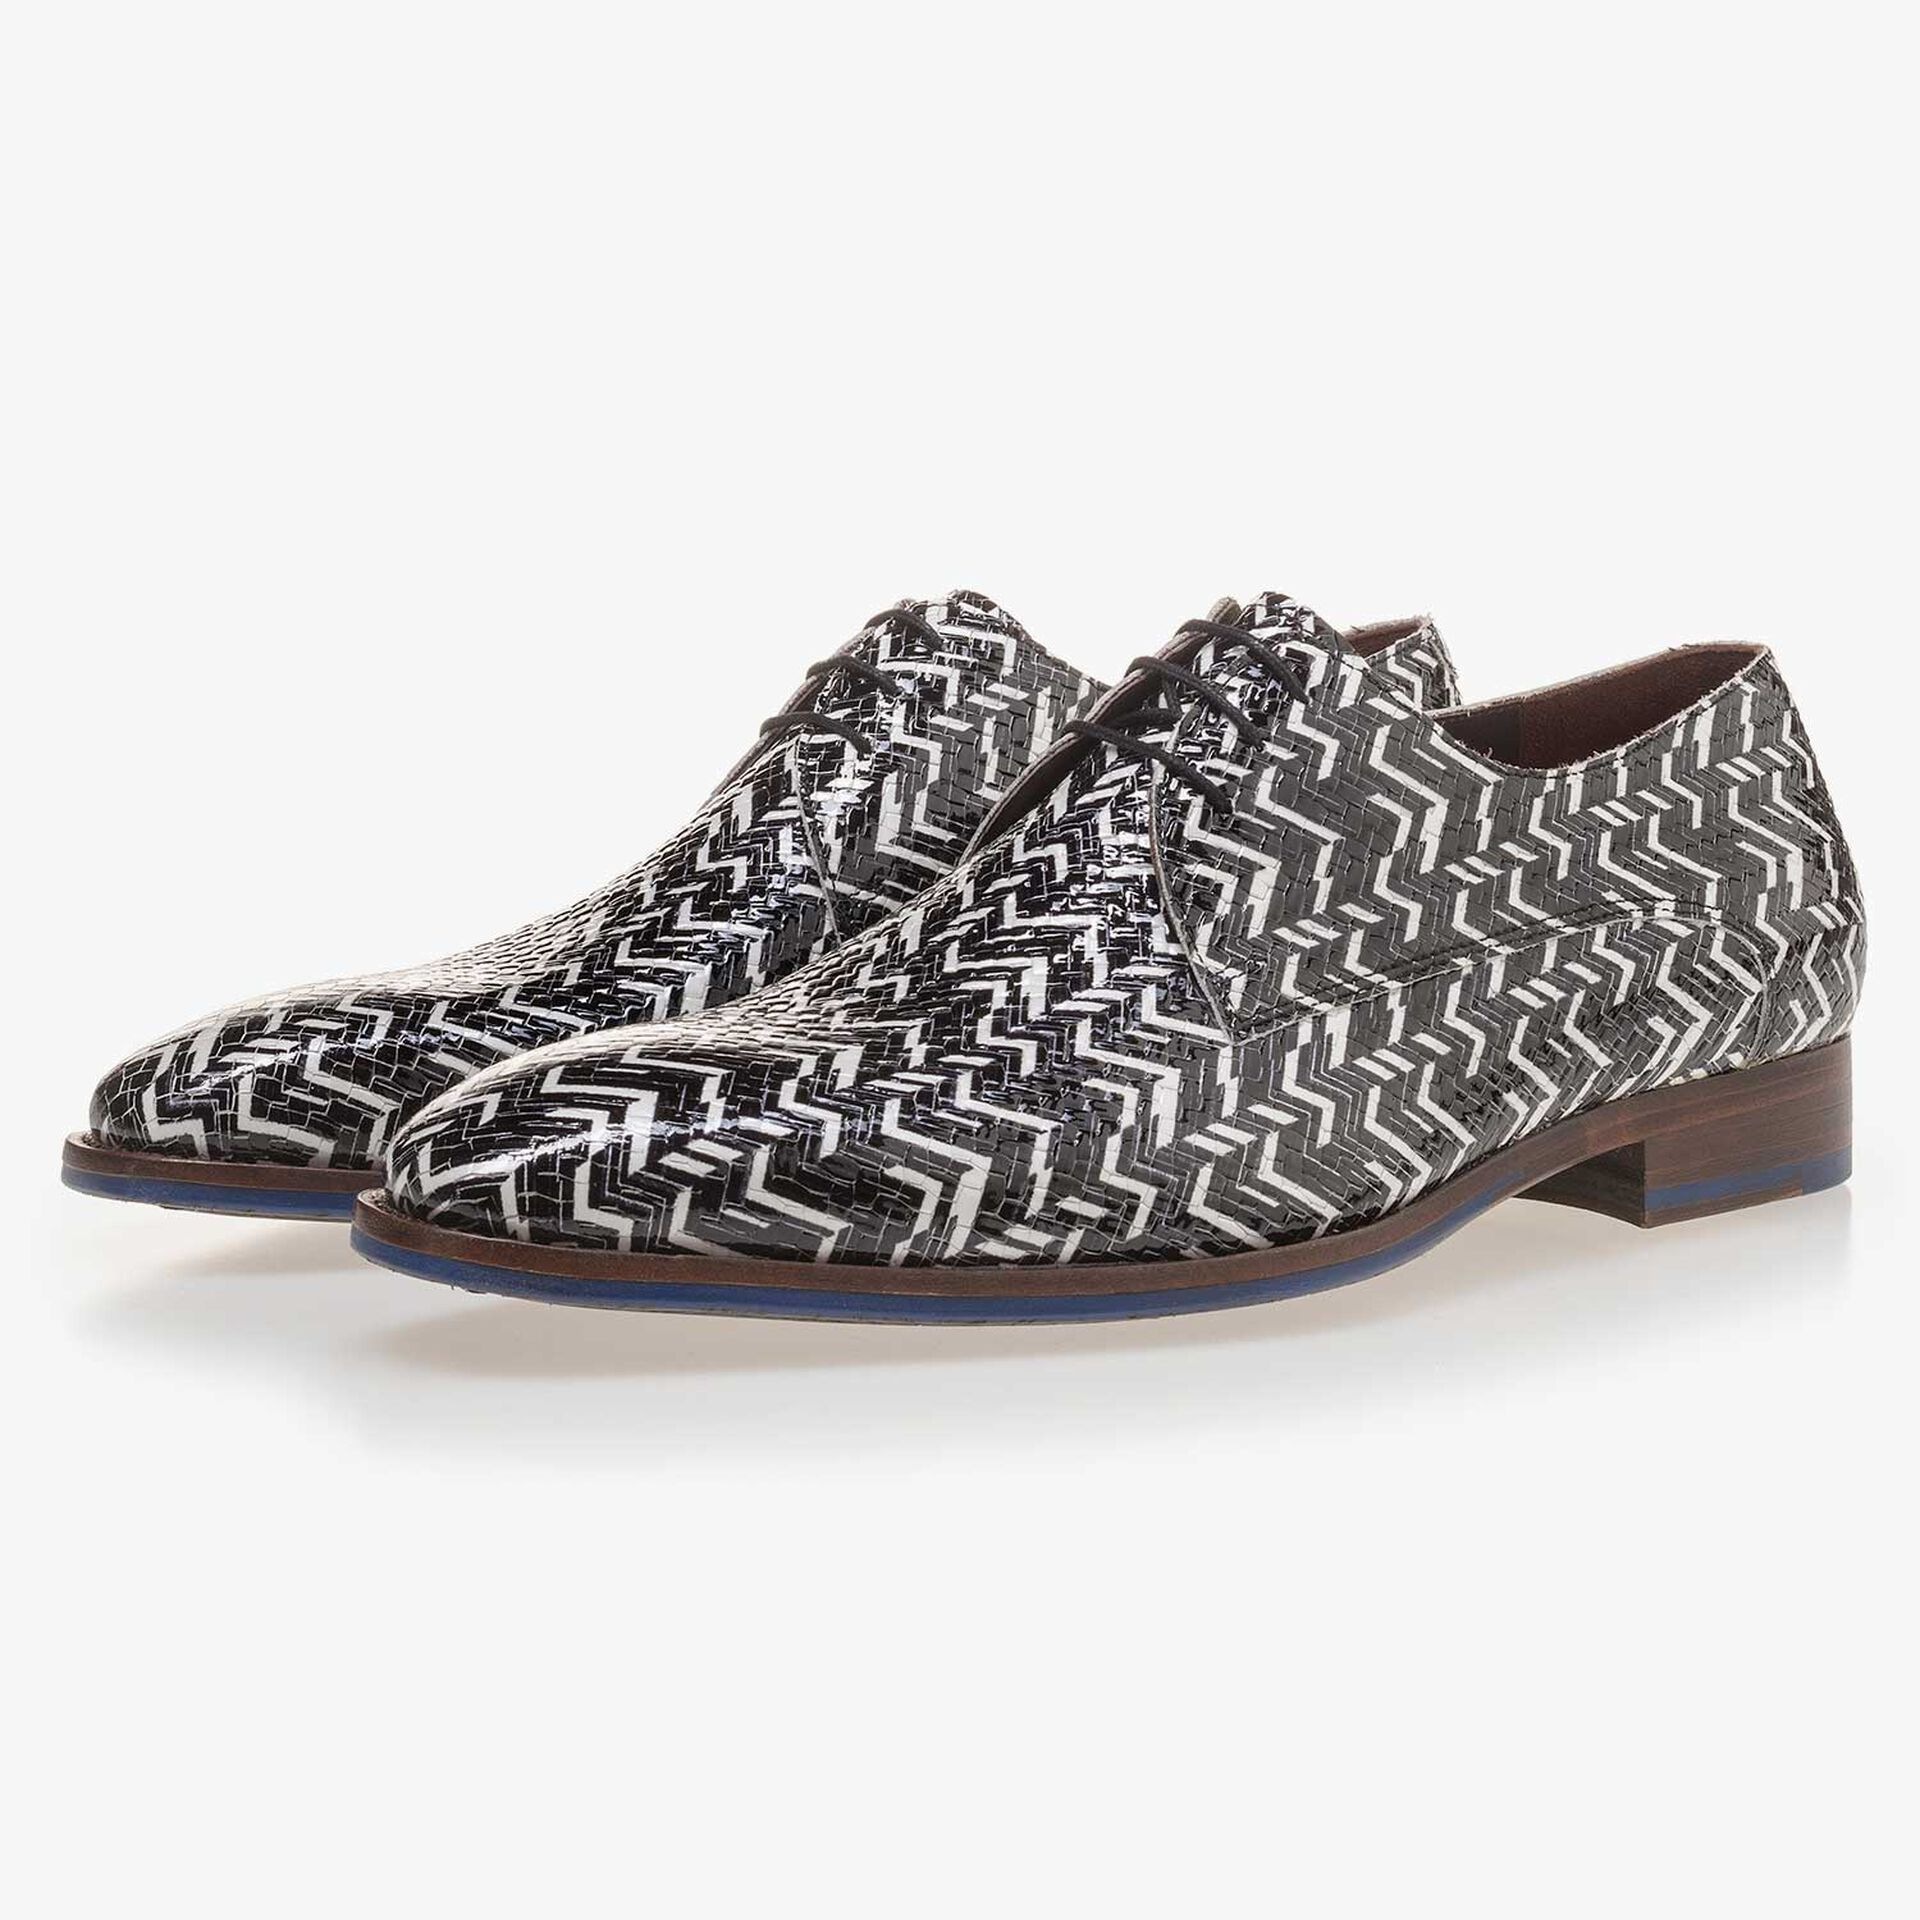 Black/White, patent leather lace shoe with pattern